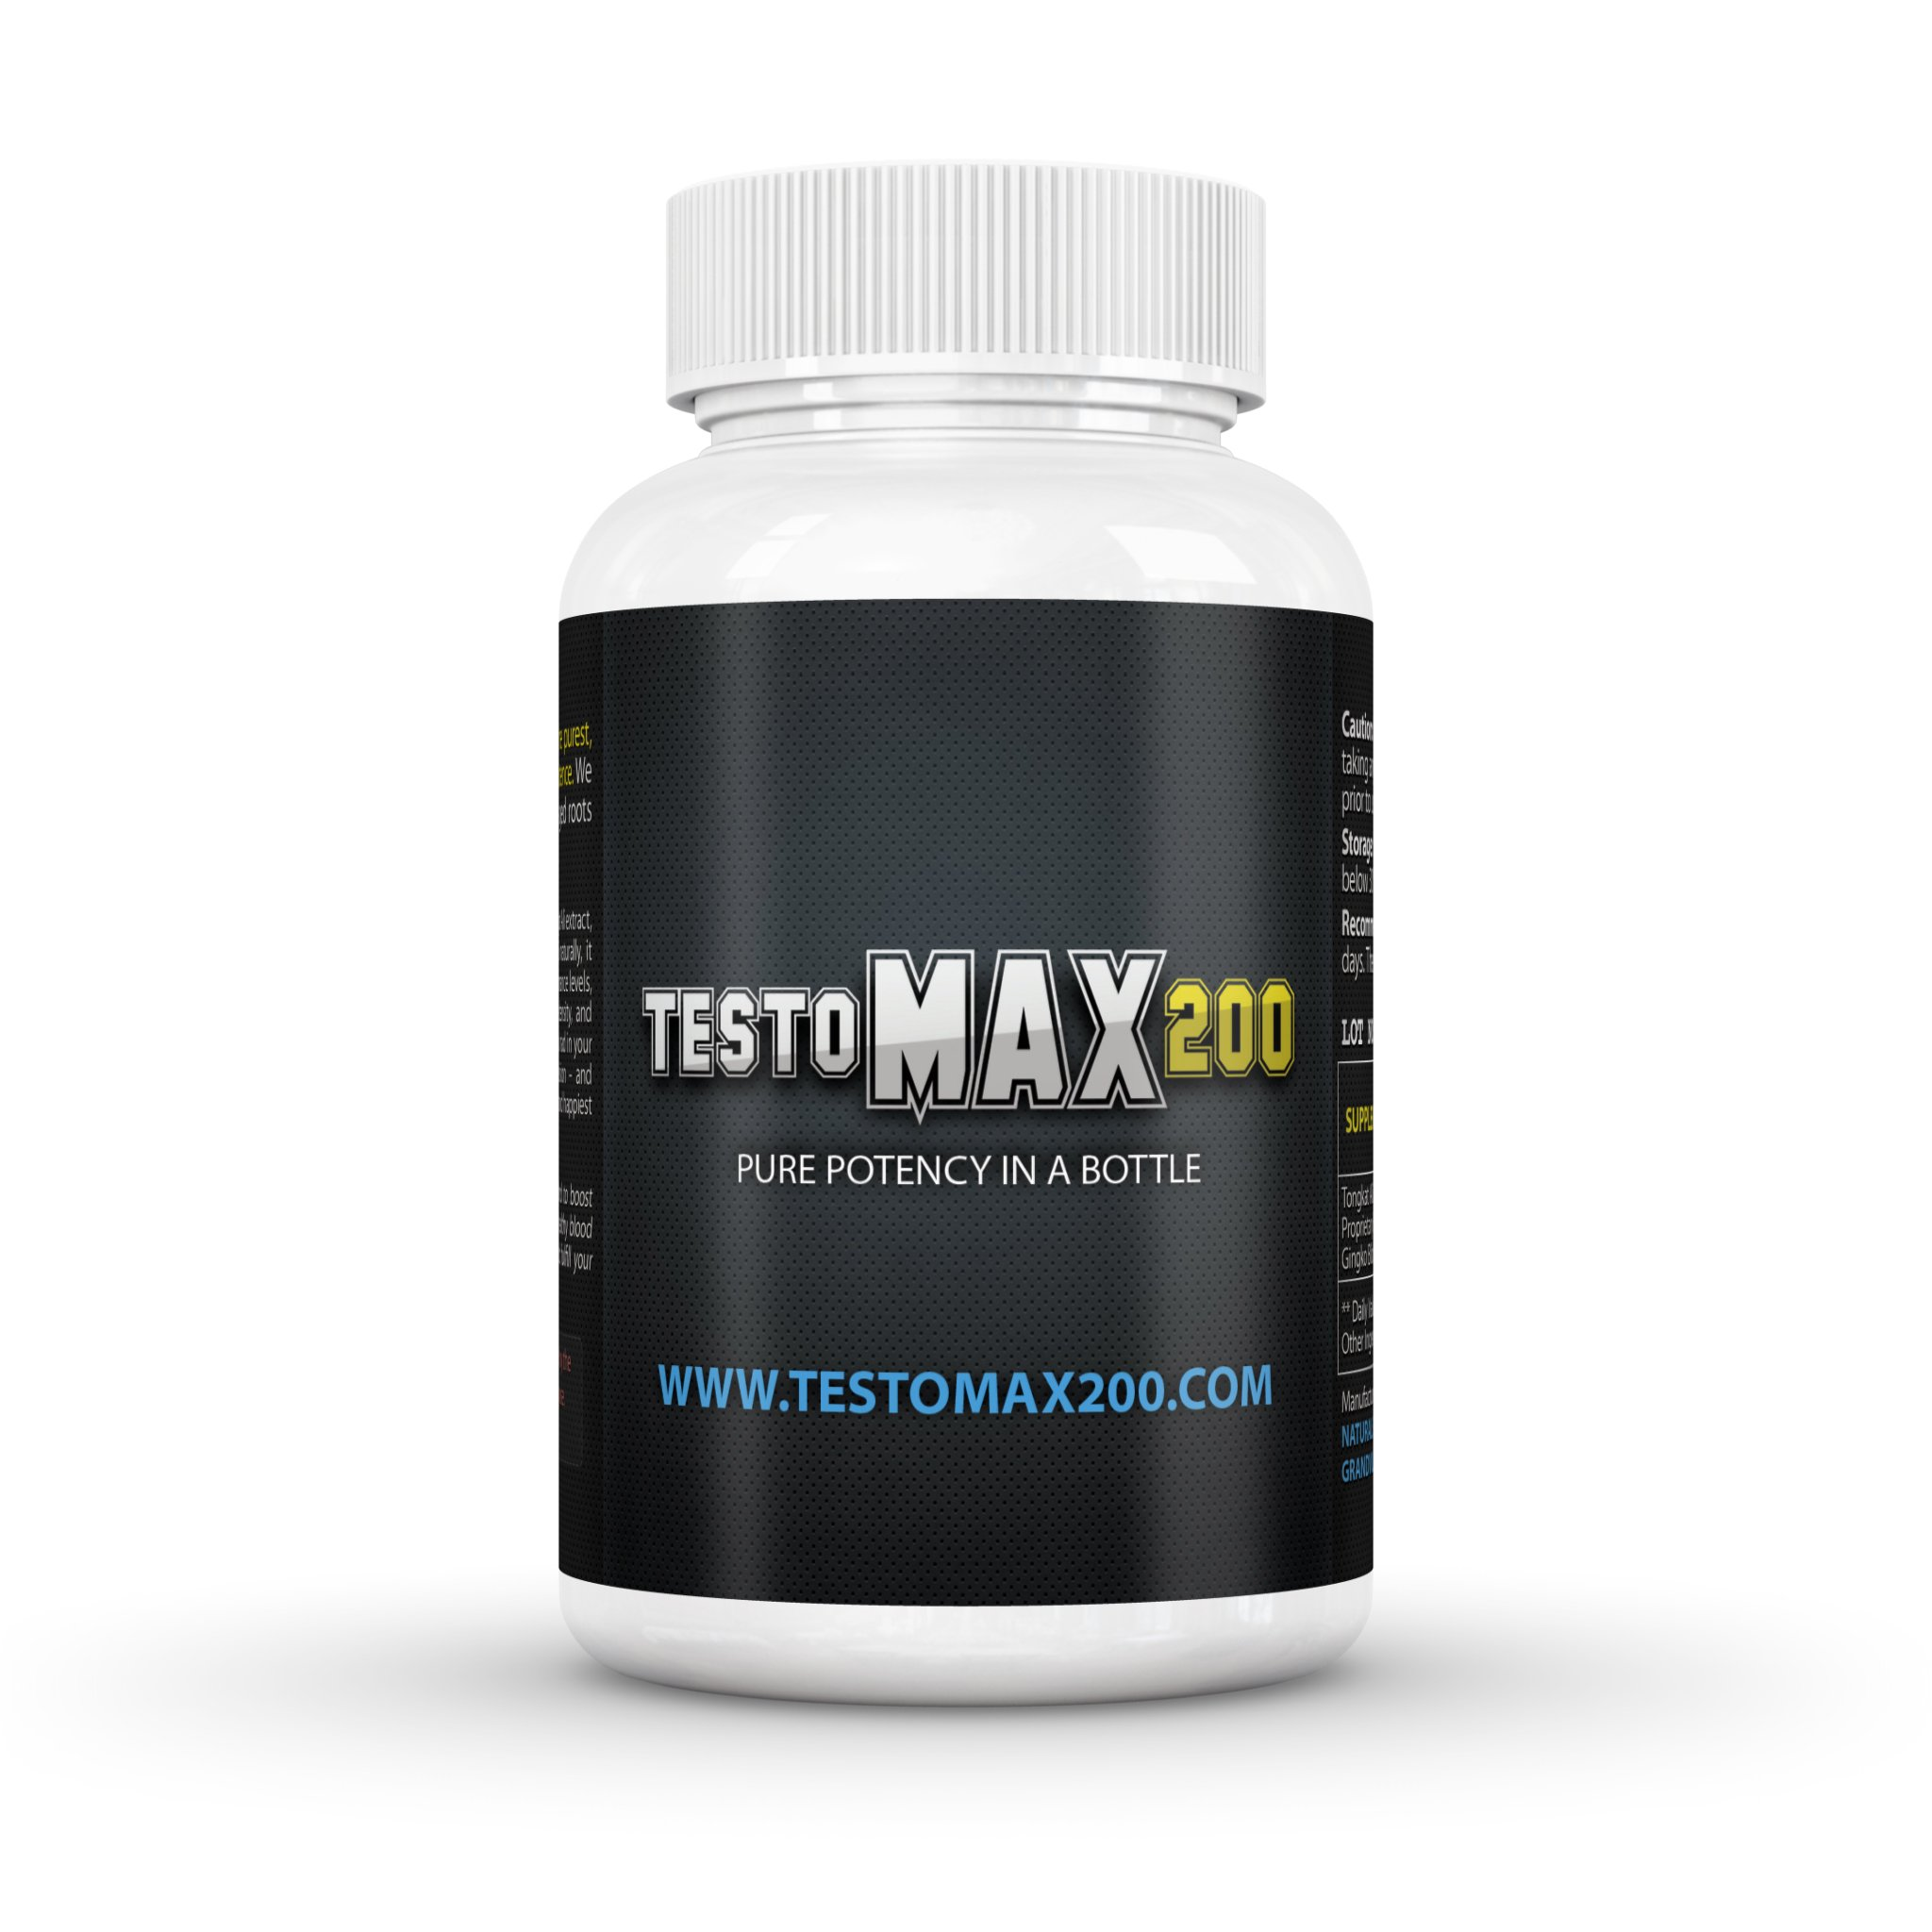 Testomax 200 - Testosterone Booster - Natural Testosterone Booster For Men